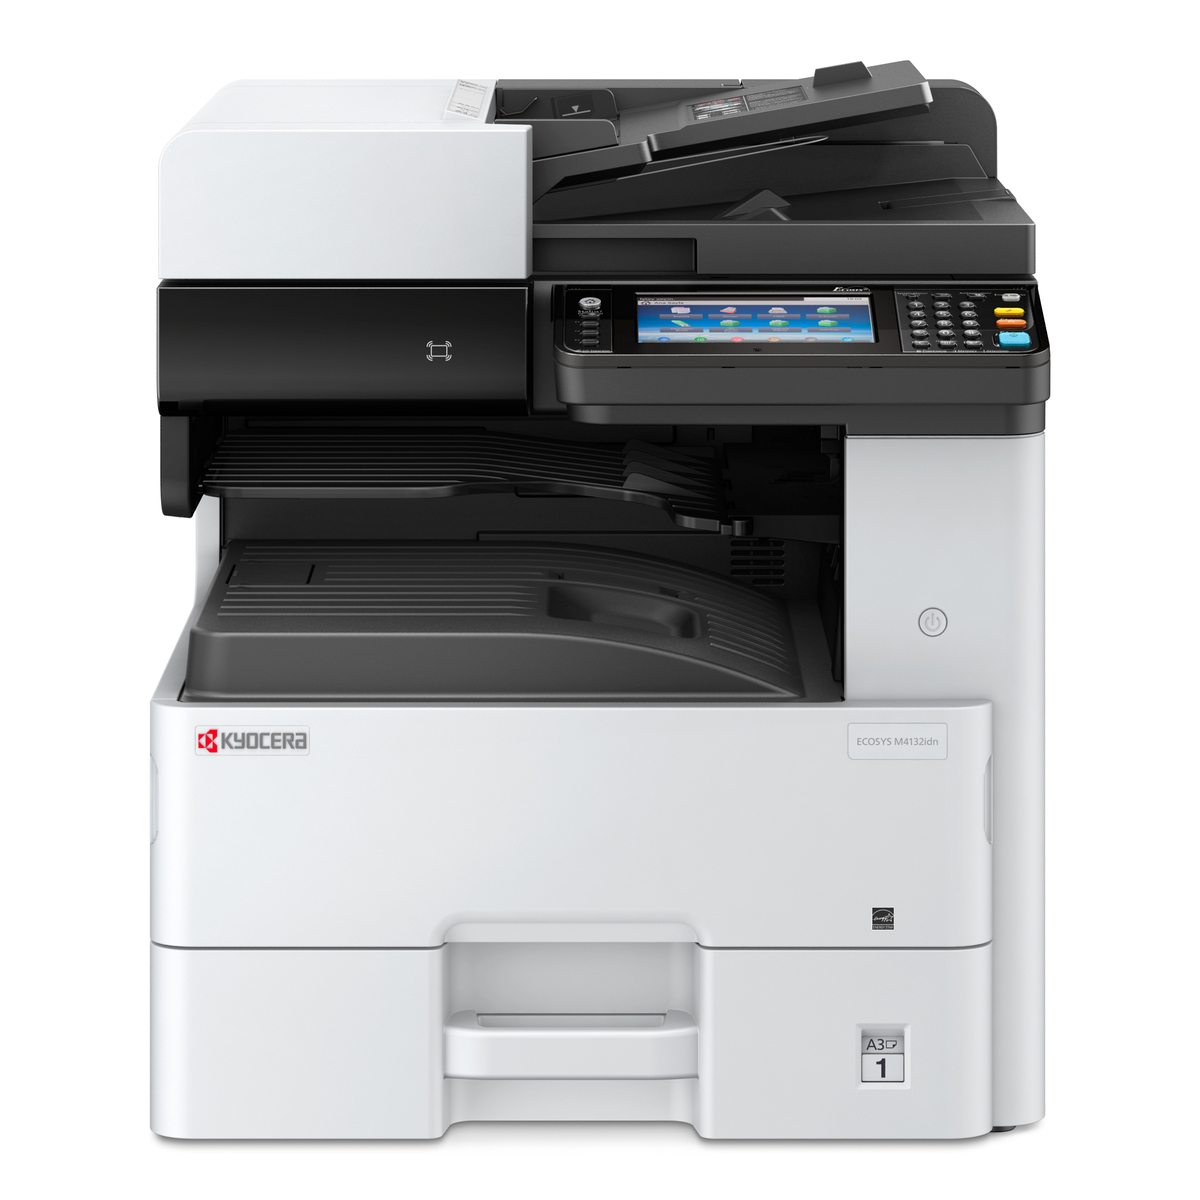 Kyocera Copiers:  The Kyocera ECOSYS M4132idn Copier